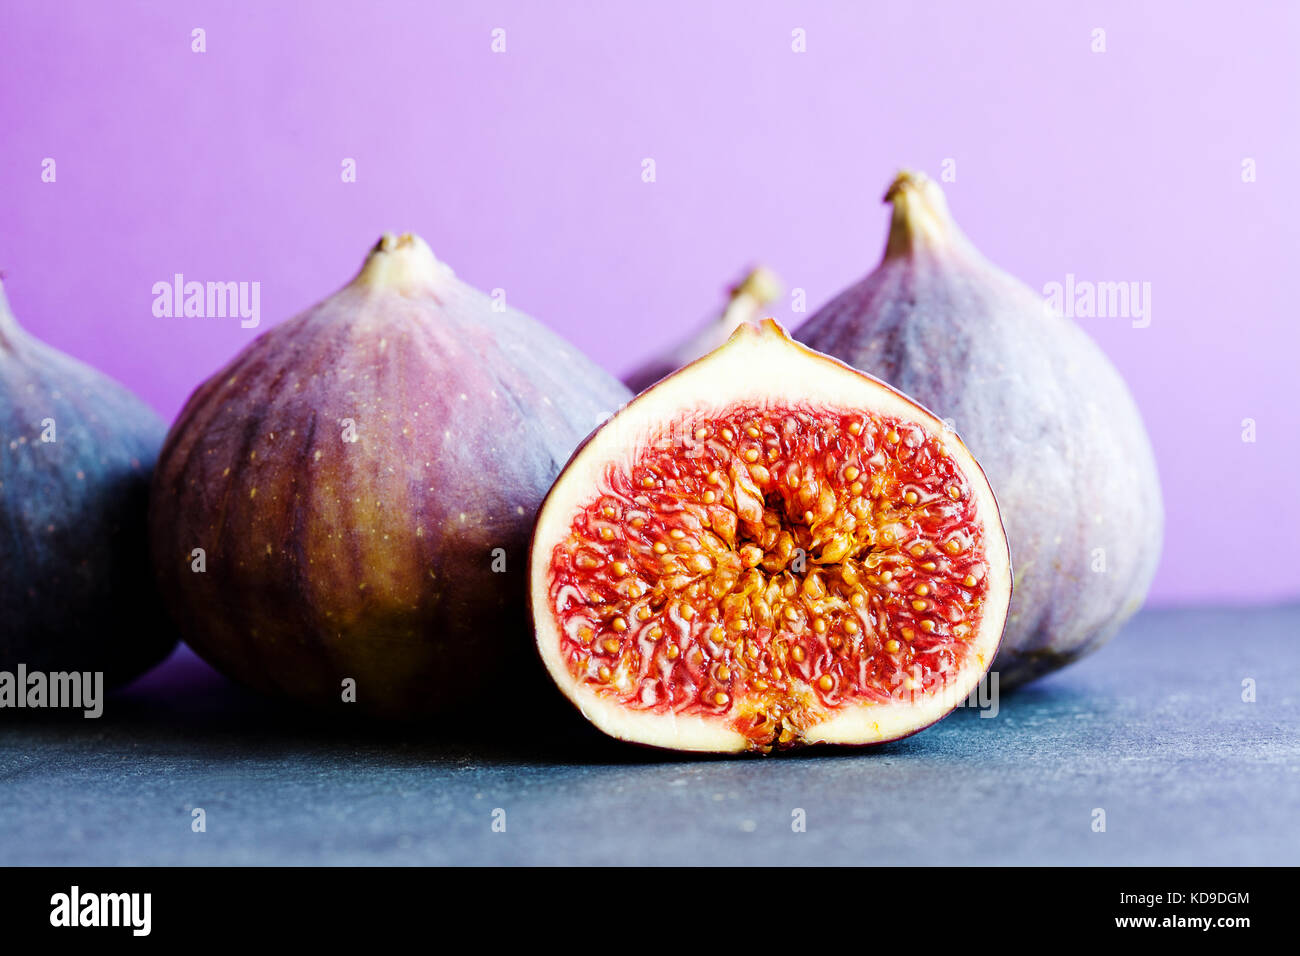 Colorfull still life organic ripe figs on stony table, beautiful purple violet background. Selective focus on sliced - Stock Image